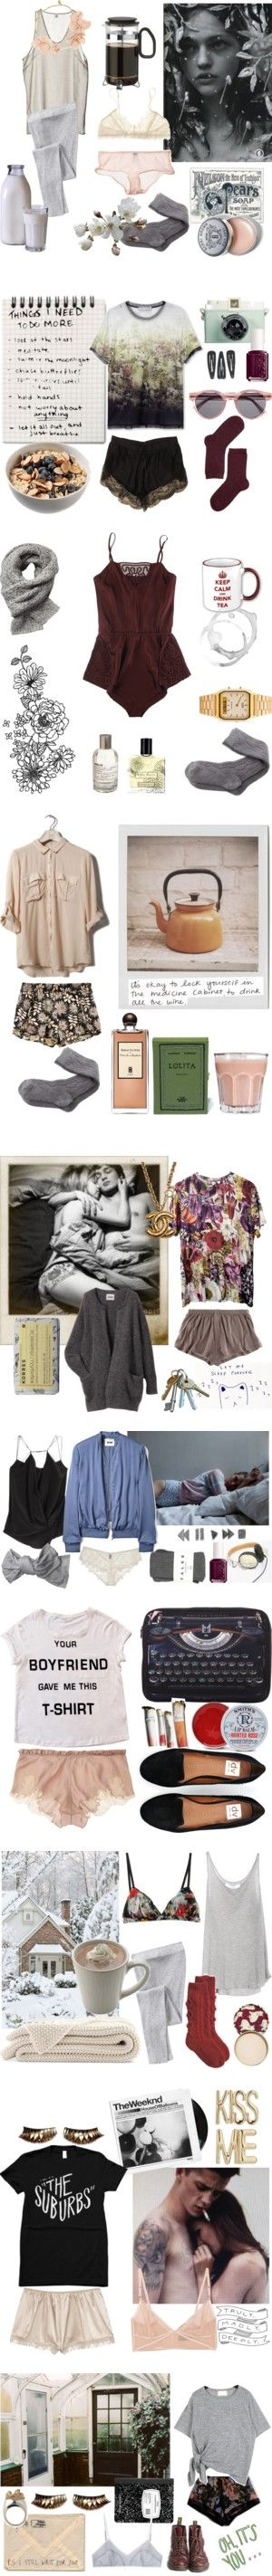 """Mornings"" by kelly-m-o on Polyvore"